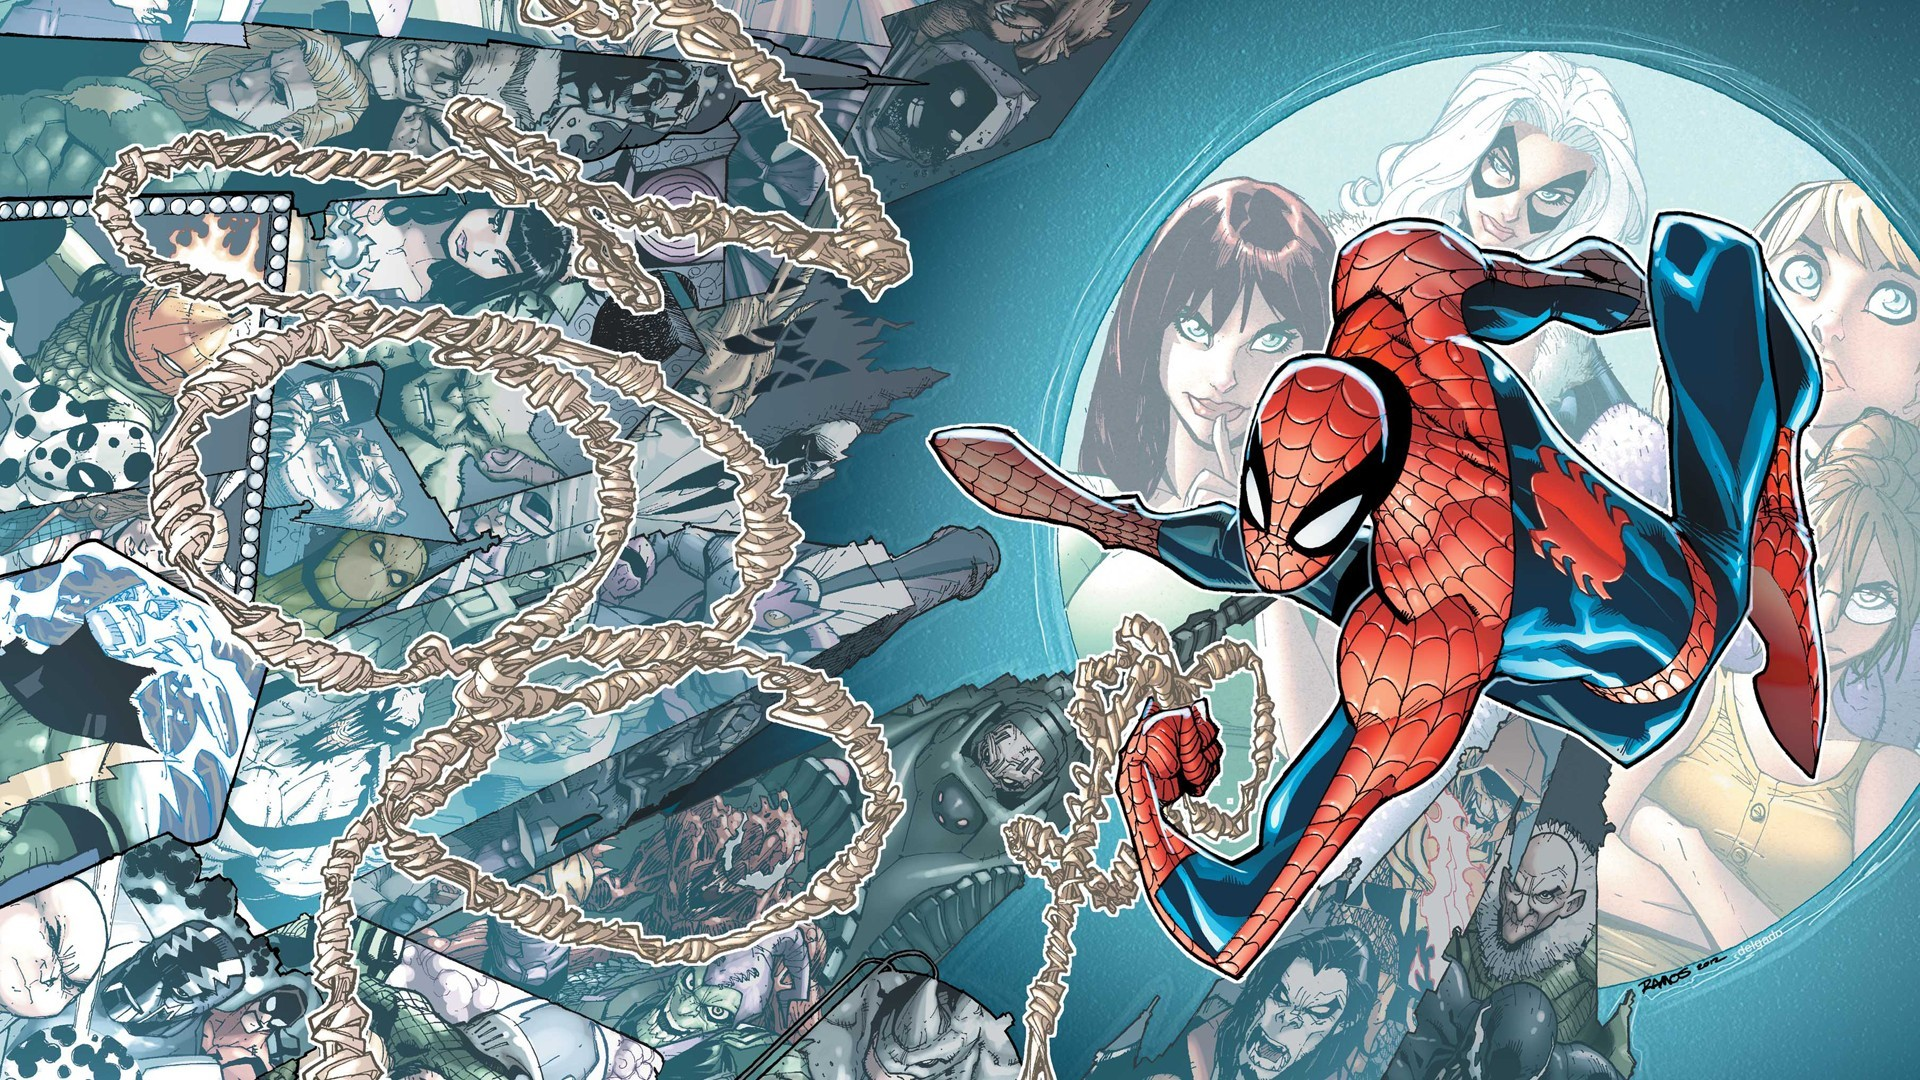 Res: 1920x1080, Comics Spider-Man Marvel Comics wallpaper |  | 231667 | WallpaperUP